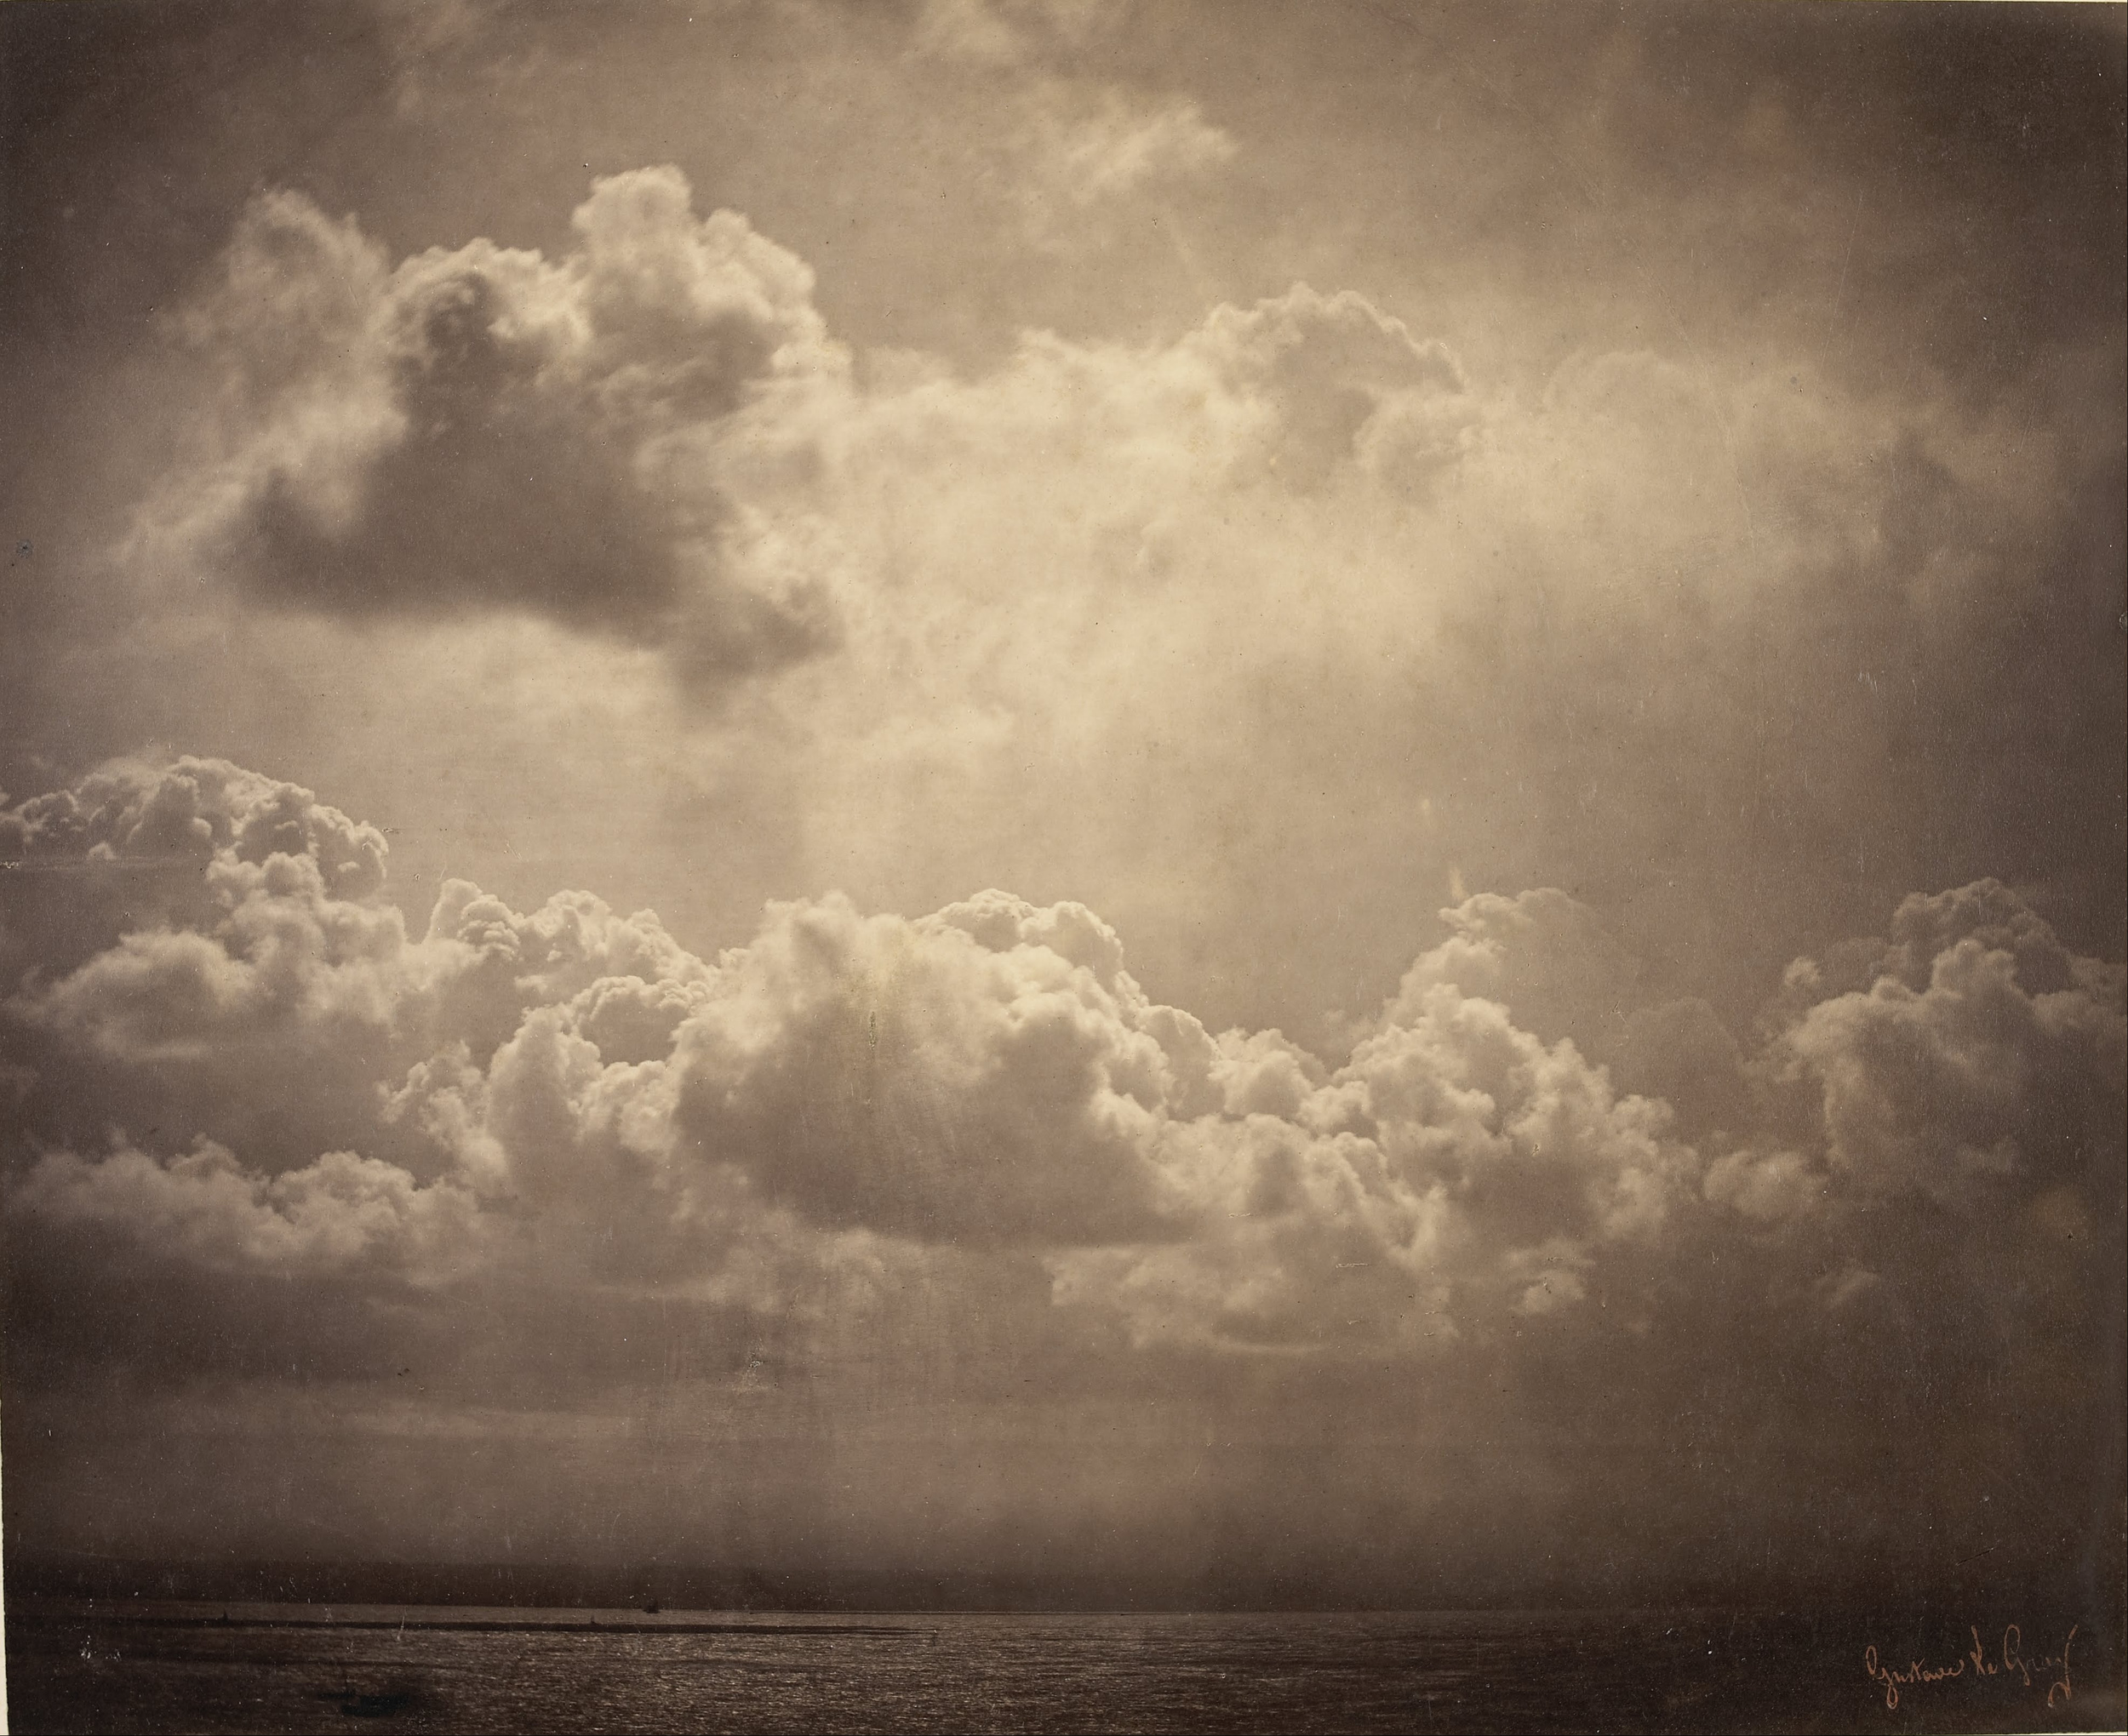 Gustave le Gray -  Seascape, study of clouds   Between 1856 and 1857  -  Albumen print from a collodion glass negative  -  H. 32; W. 39 cm